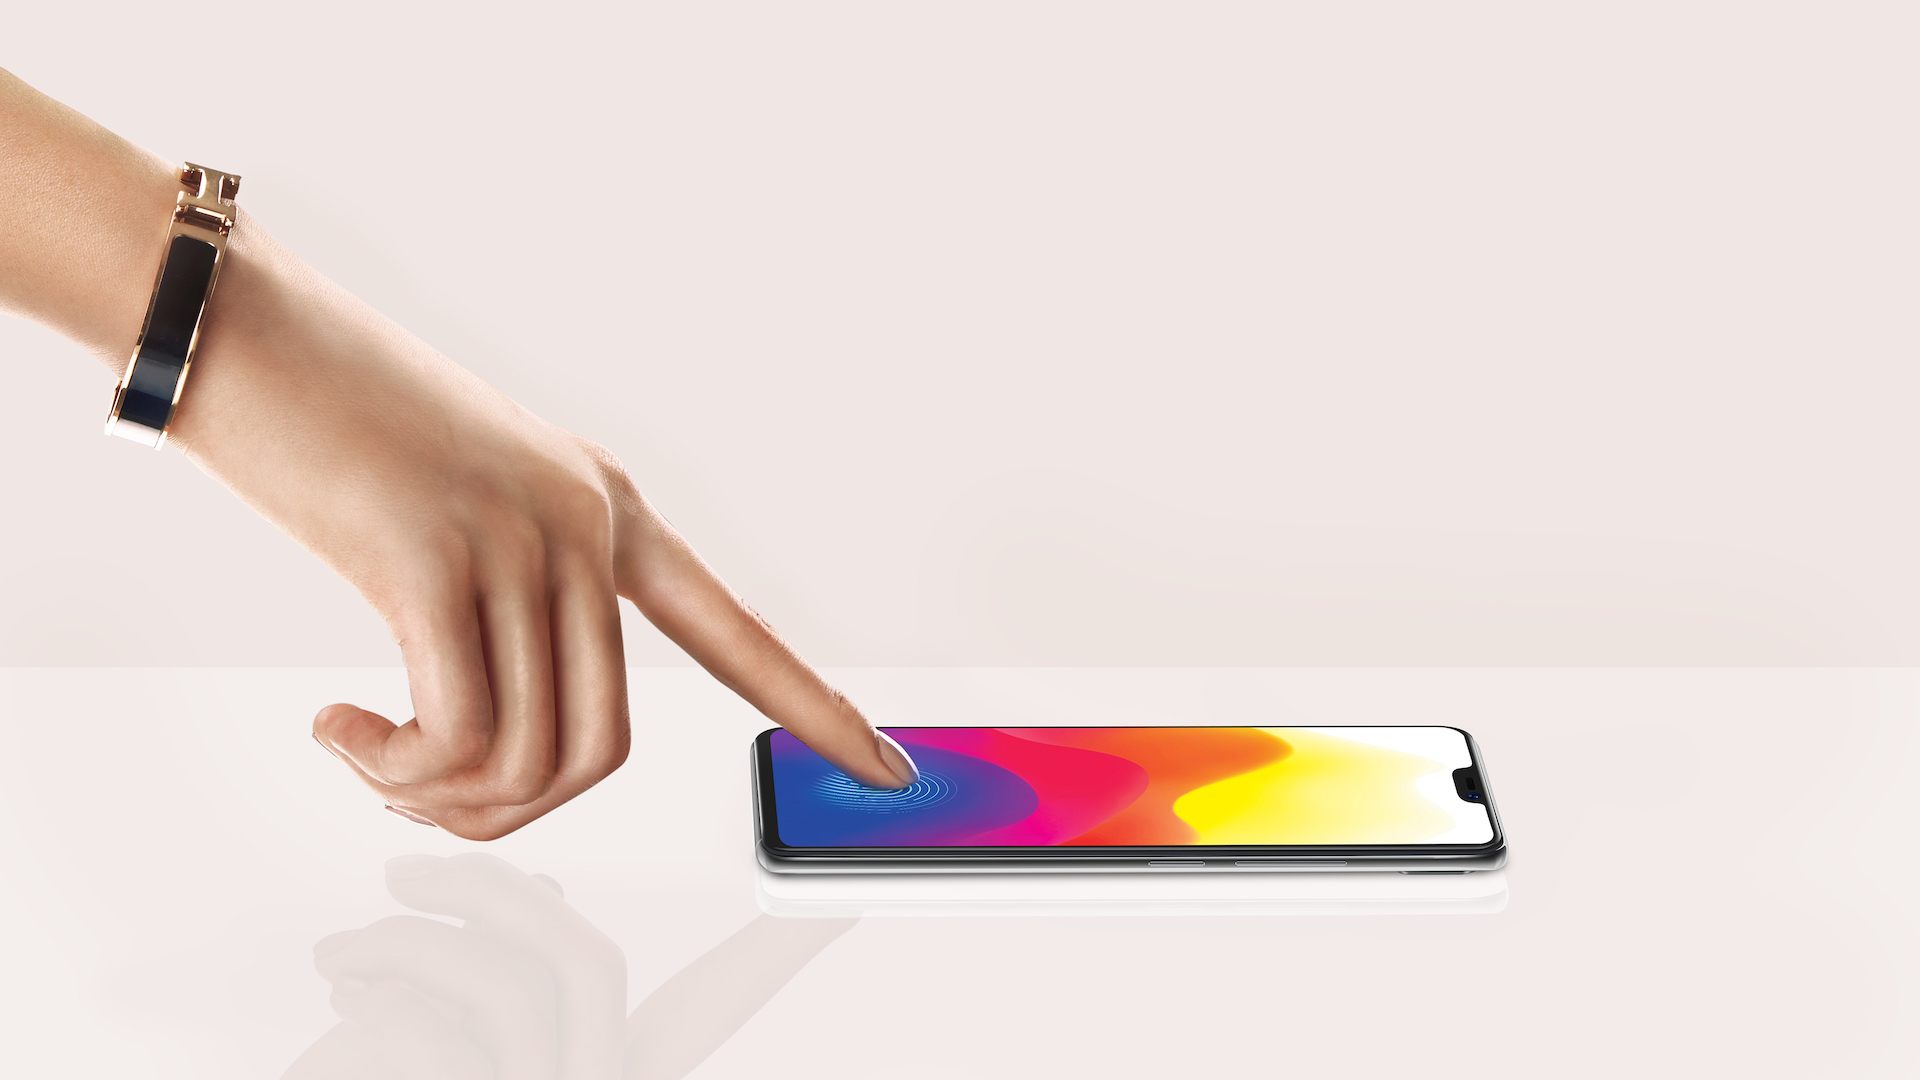 Vivo Launches In-Display Fingerprint Scanning in Latest Flagship, X21